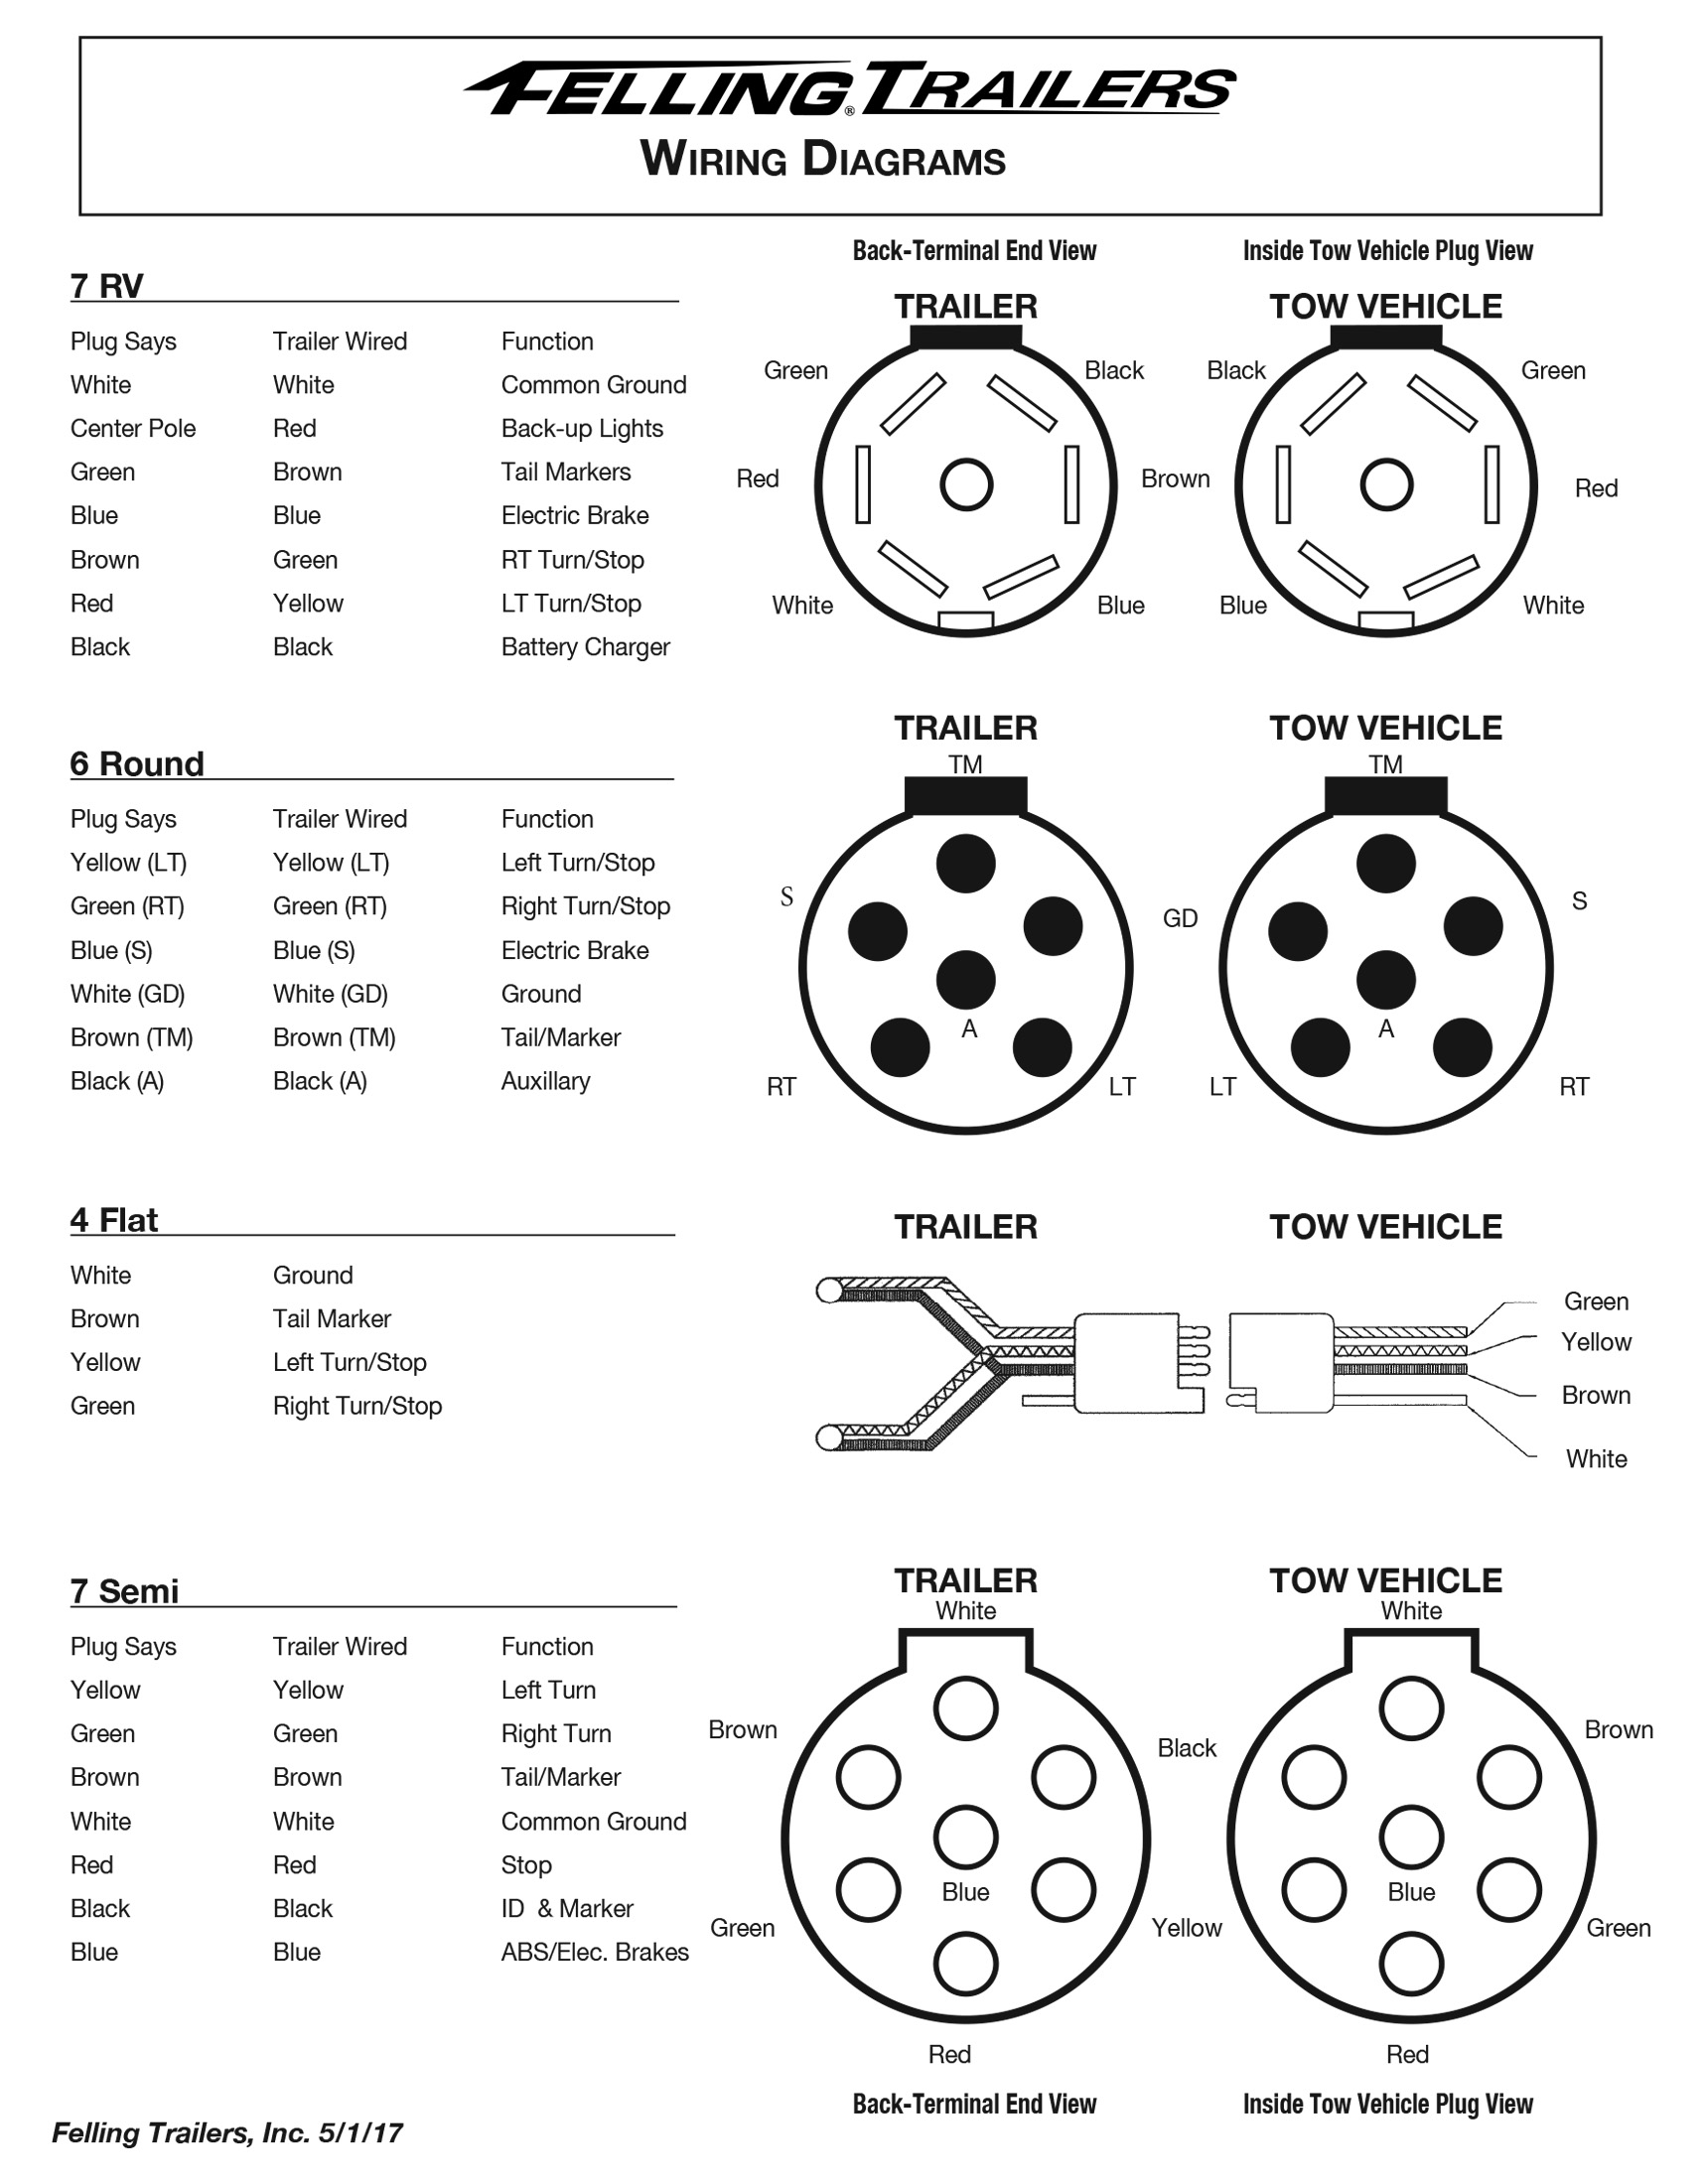 service- felling trailers wiring diagrams, wheel toque 9 way rv plug wiring diagram